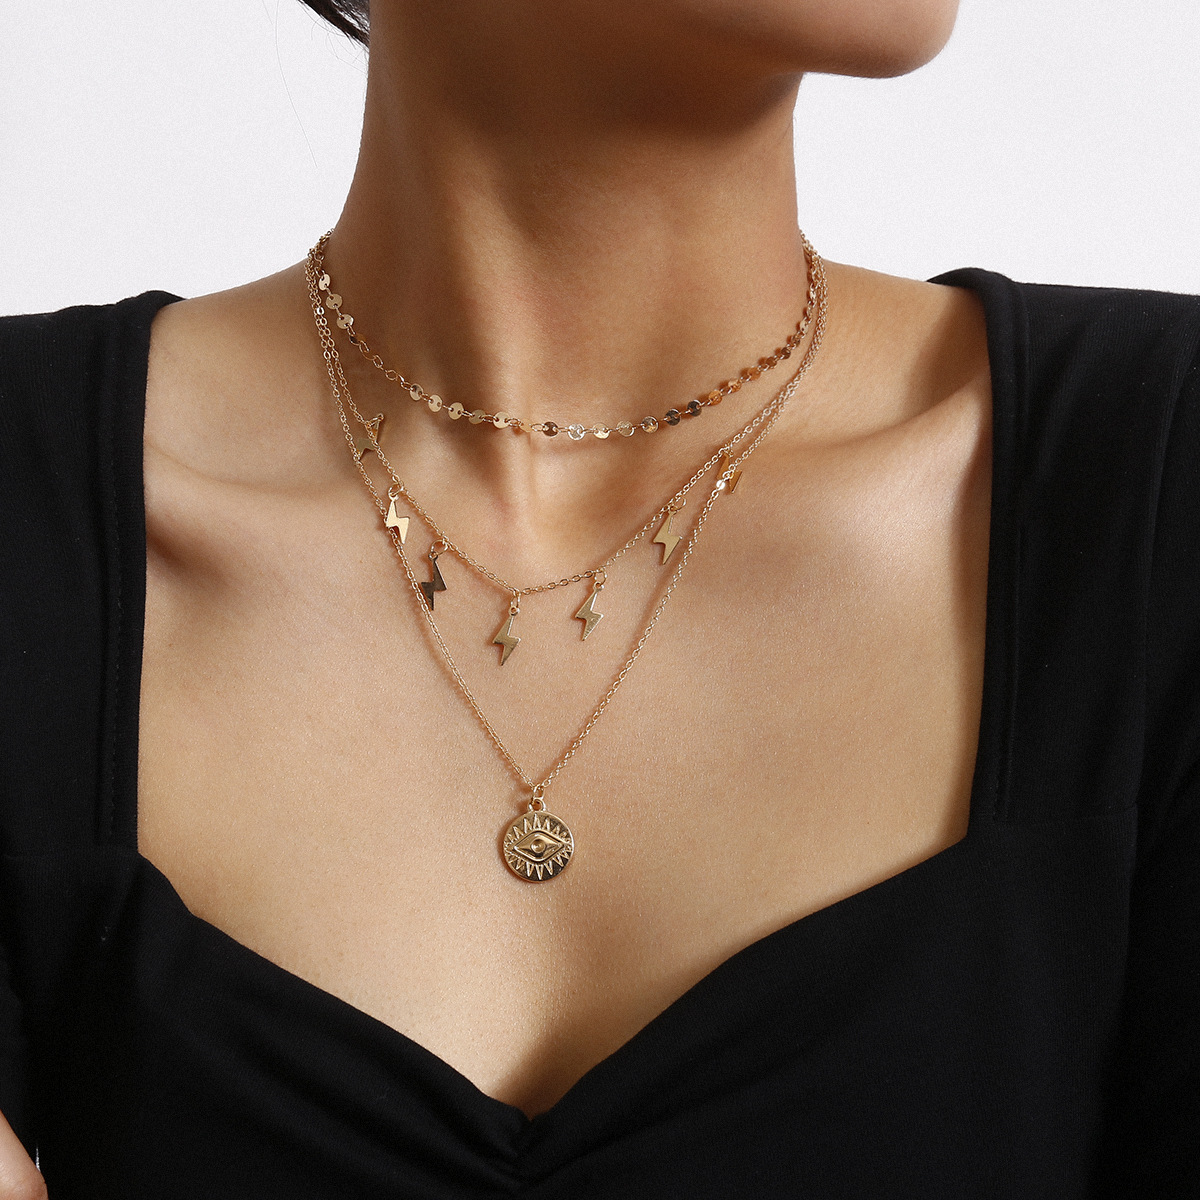 Alloy Sequins Choker Lightning Symbol Tassel Clavicle Chain Gold Color Eye Pendant Necklaces for Women 2020 Fashion Jewelry New